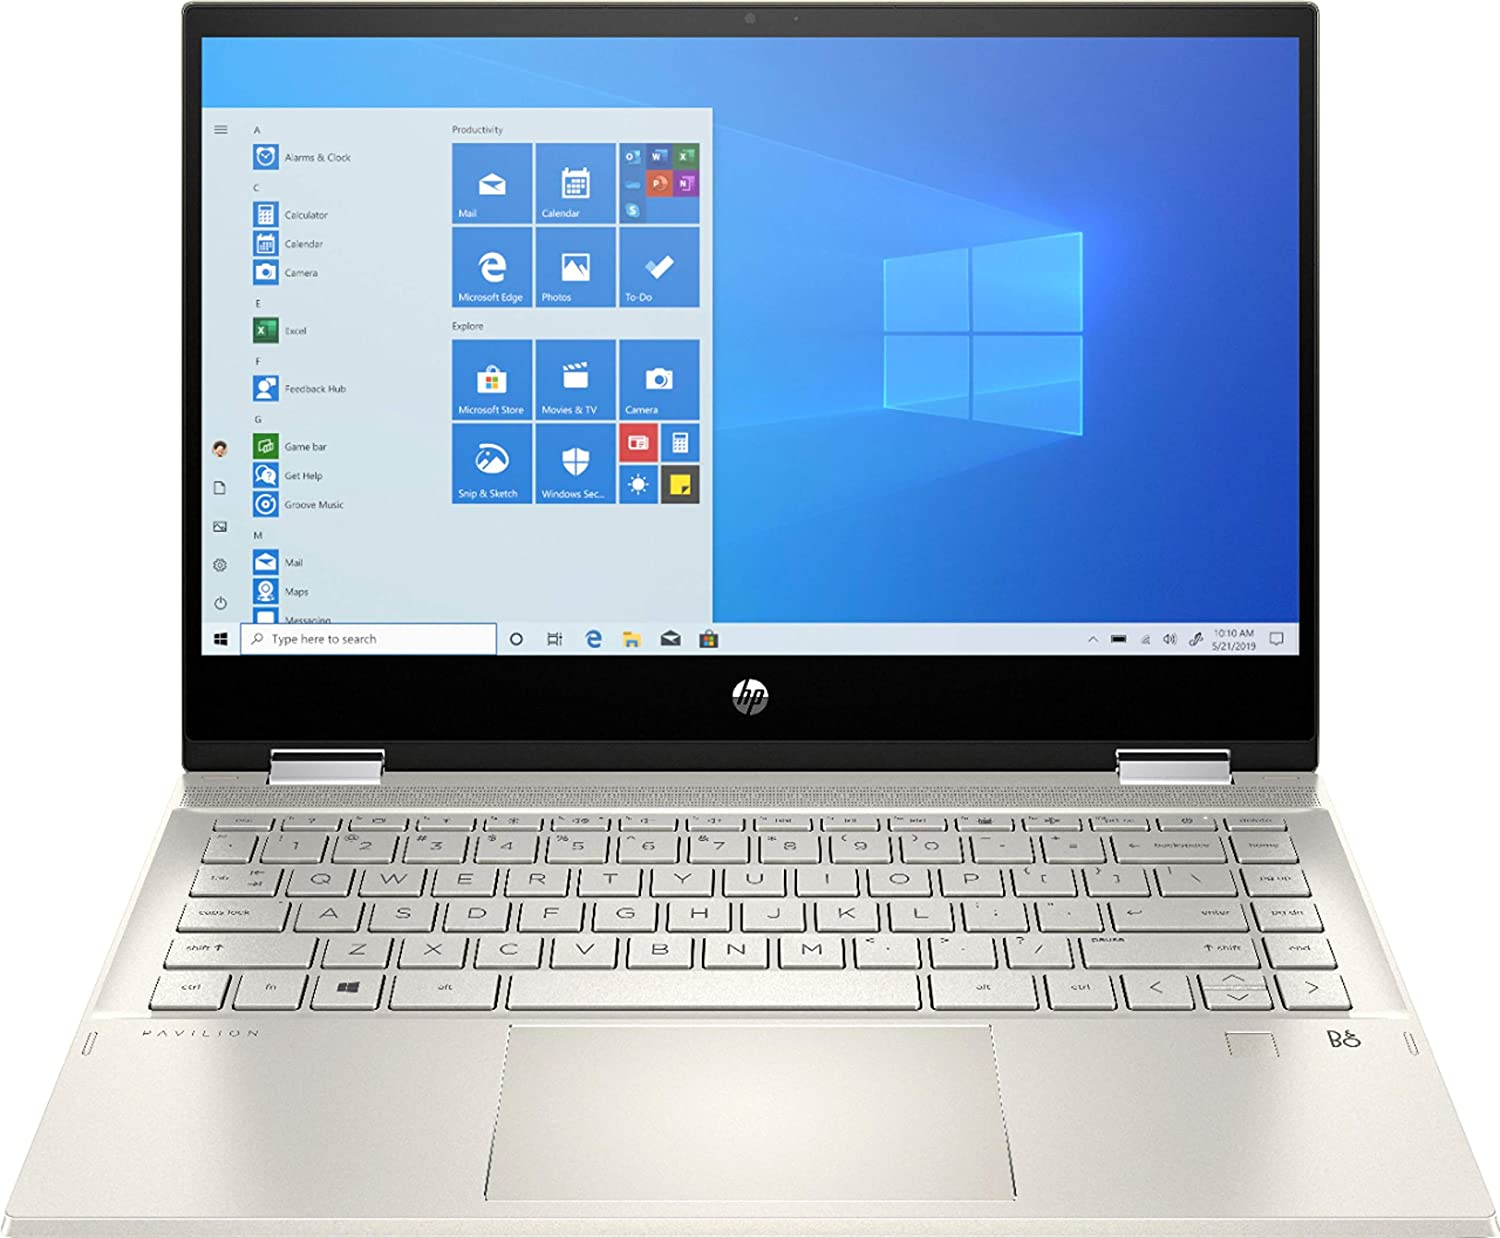 Best Laptop For Note Taking